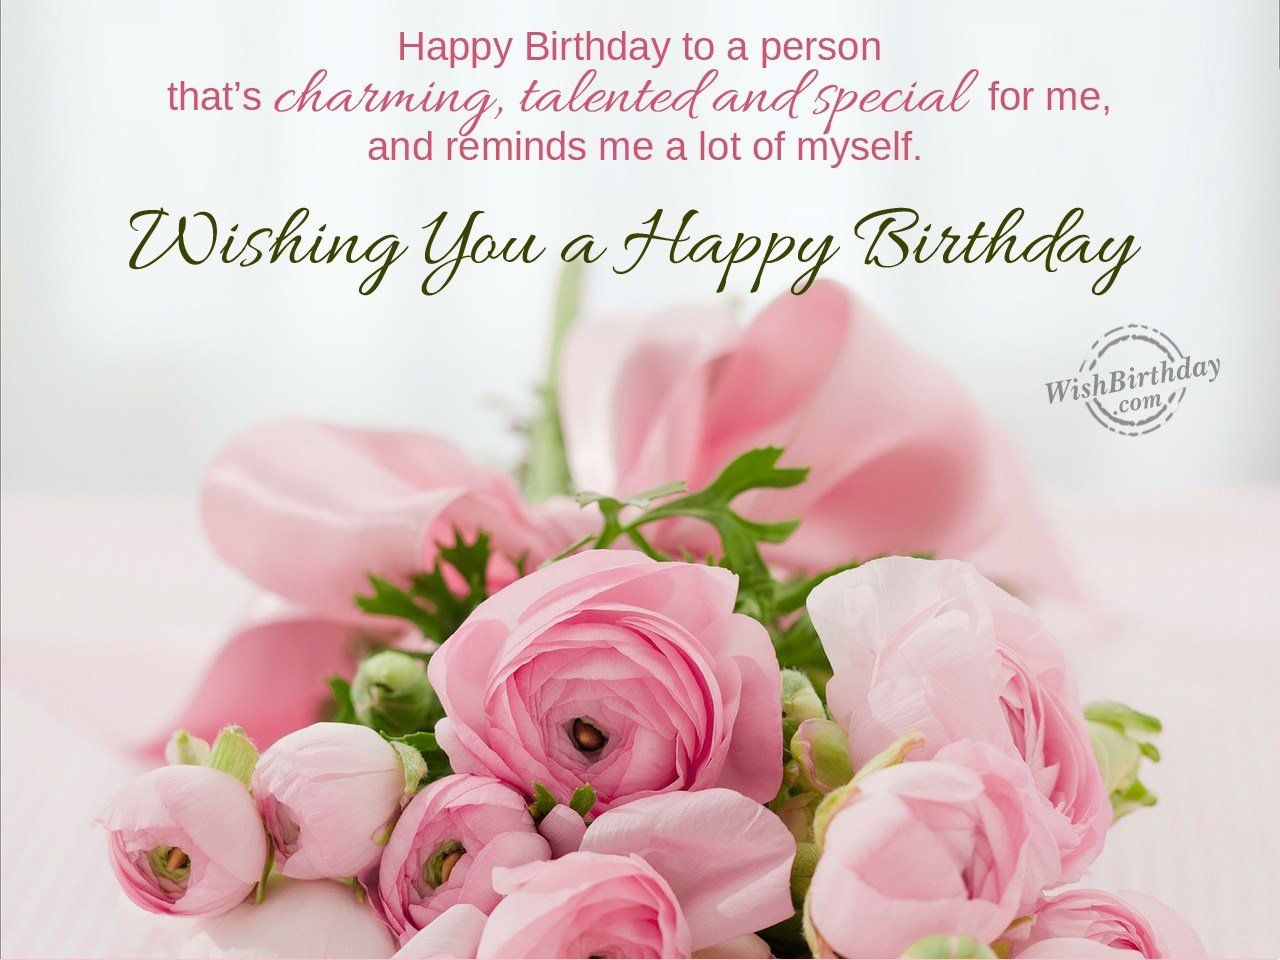 Cool Good Looking Wife Happy Happy Birthday Blessings Son Happy Birthday Blessings Quotes Good Looking Wife Happy Birthday Religious Wishes Happy Birthday Religious Wishes gifts Happy Birthday Blessings